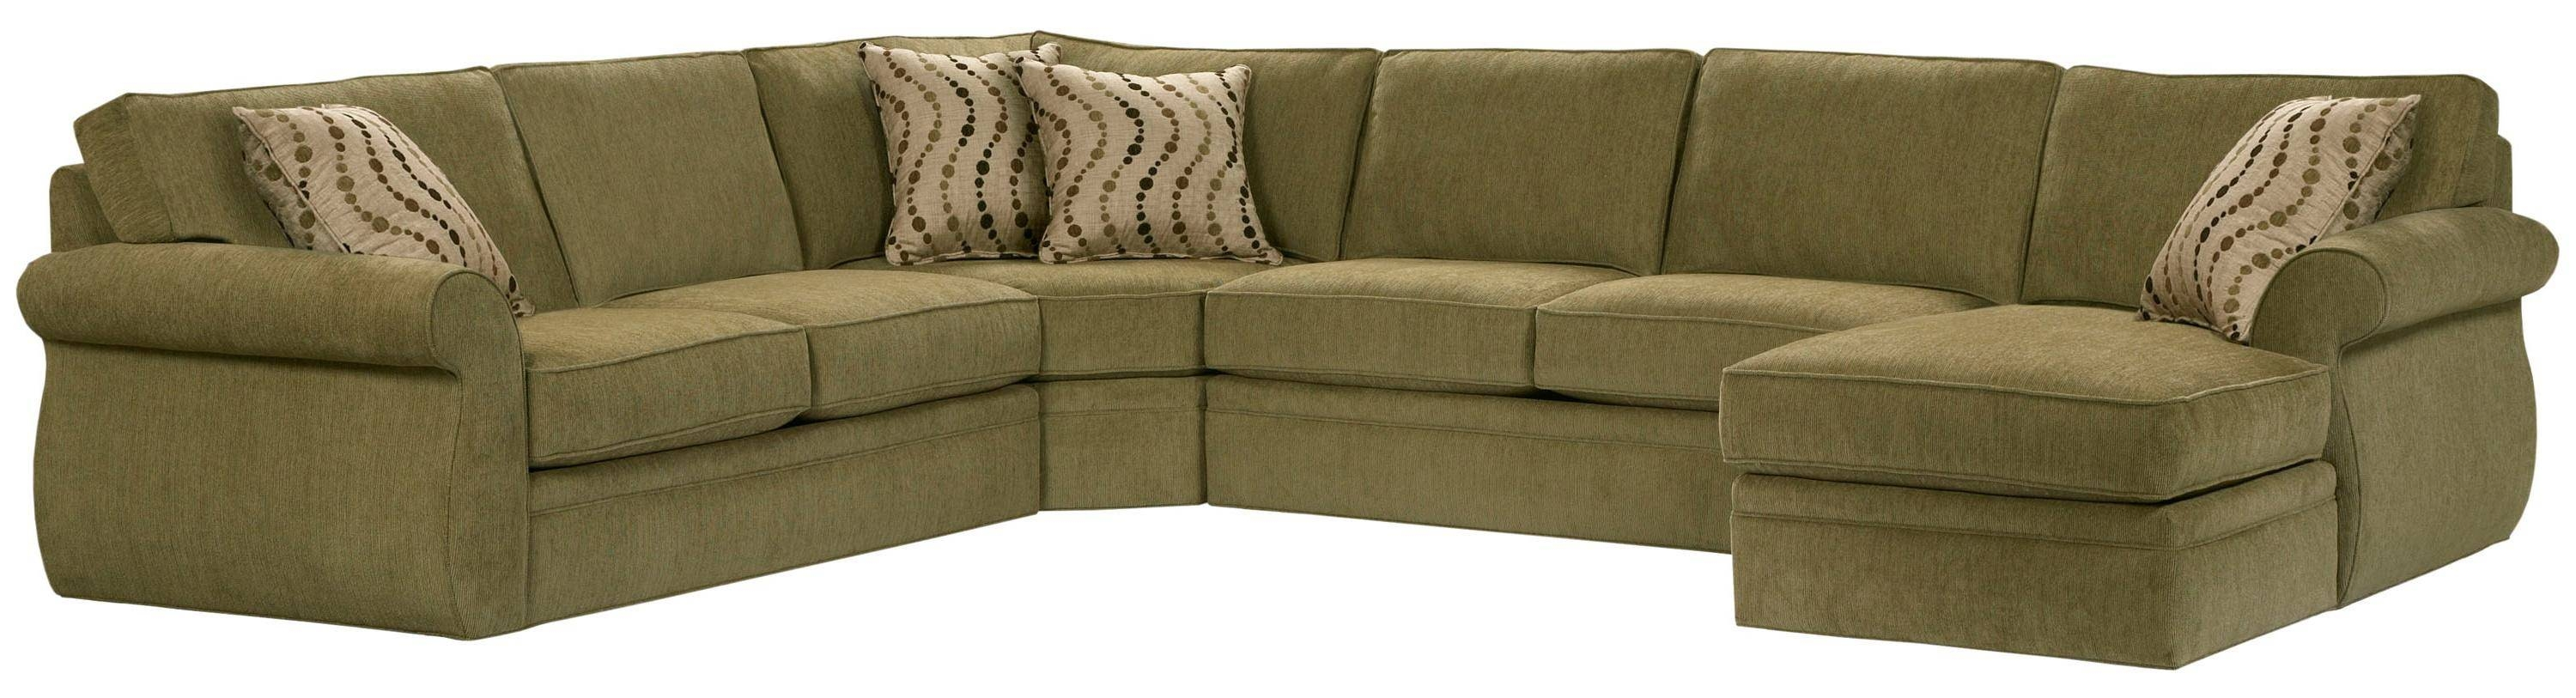 Featured Photo of Broyhill Sectional Sleeper Sofas